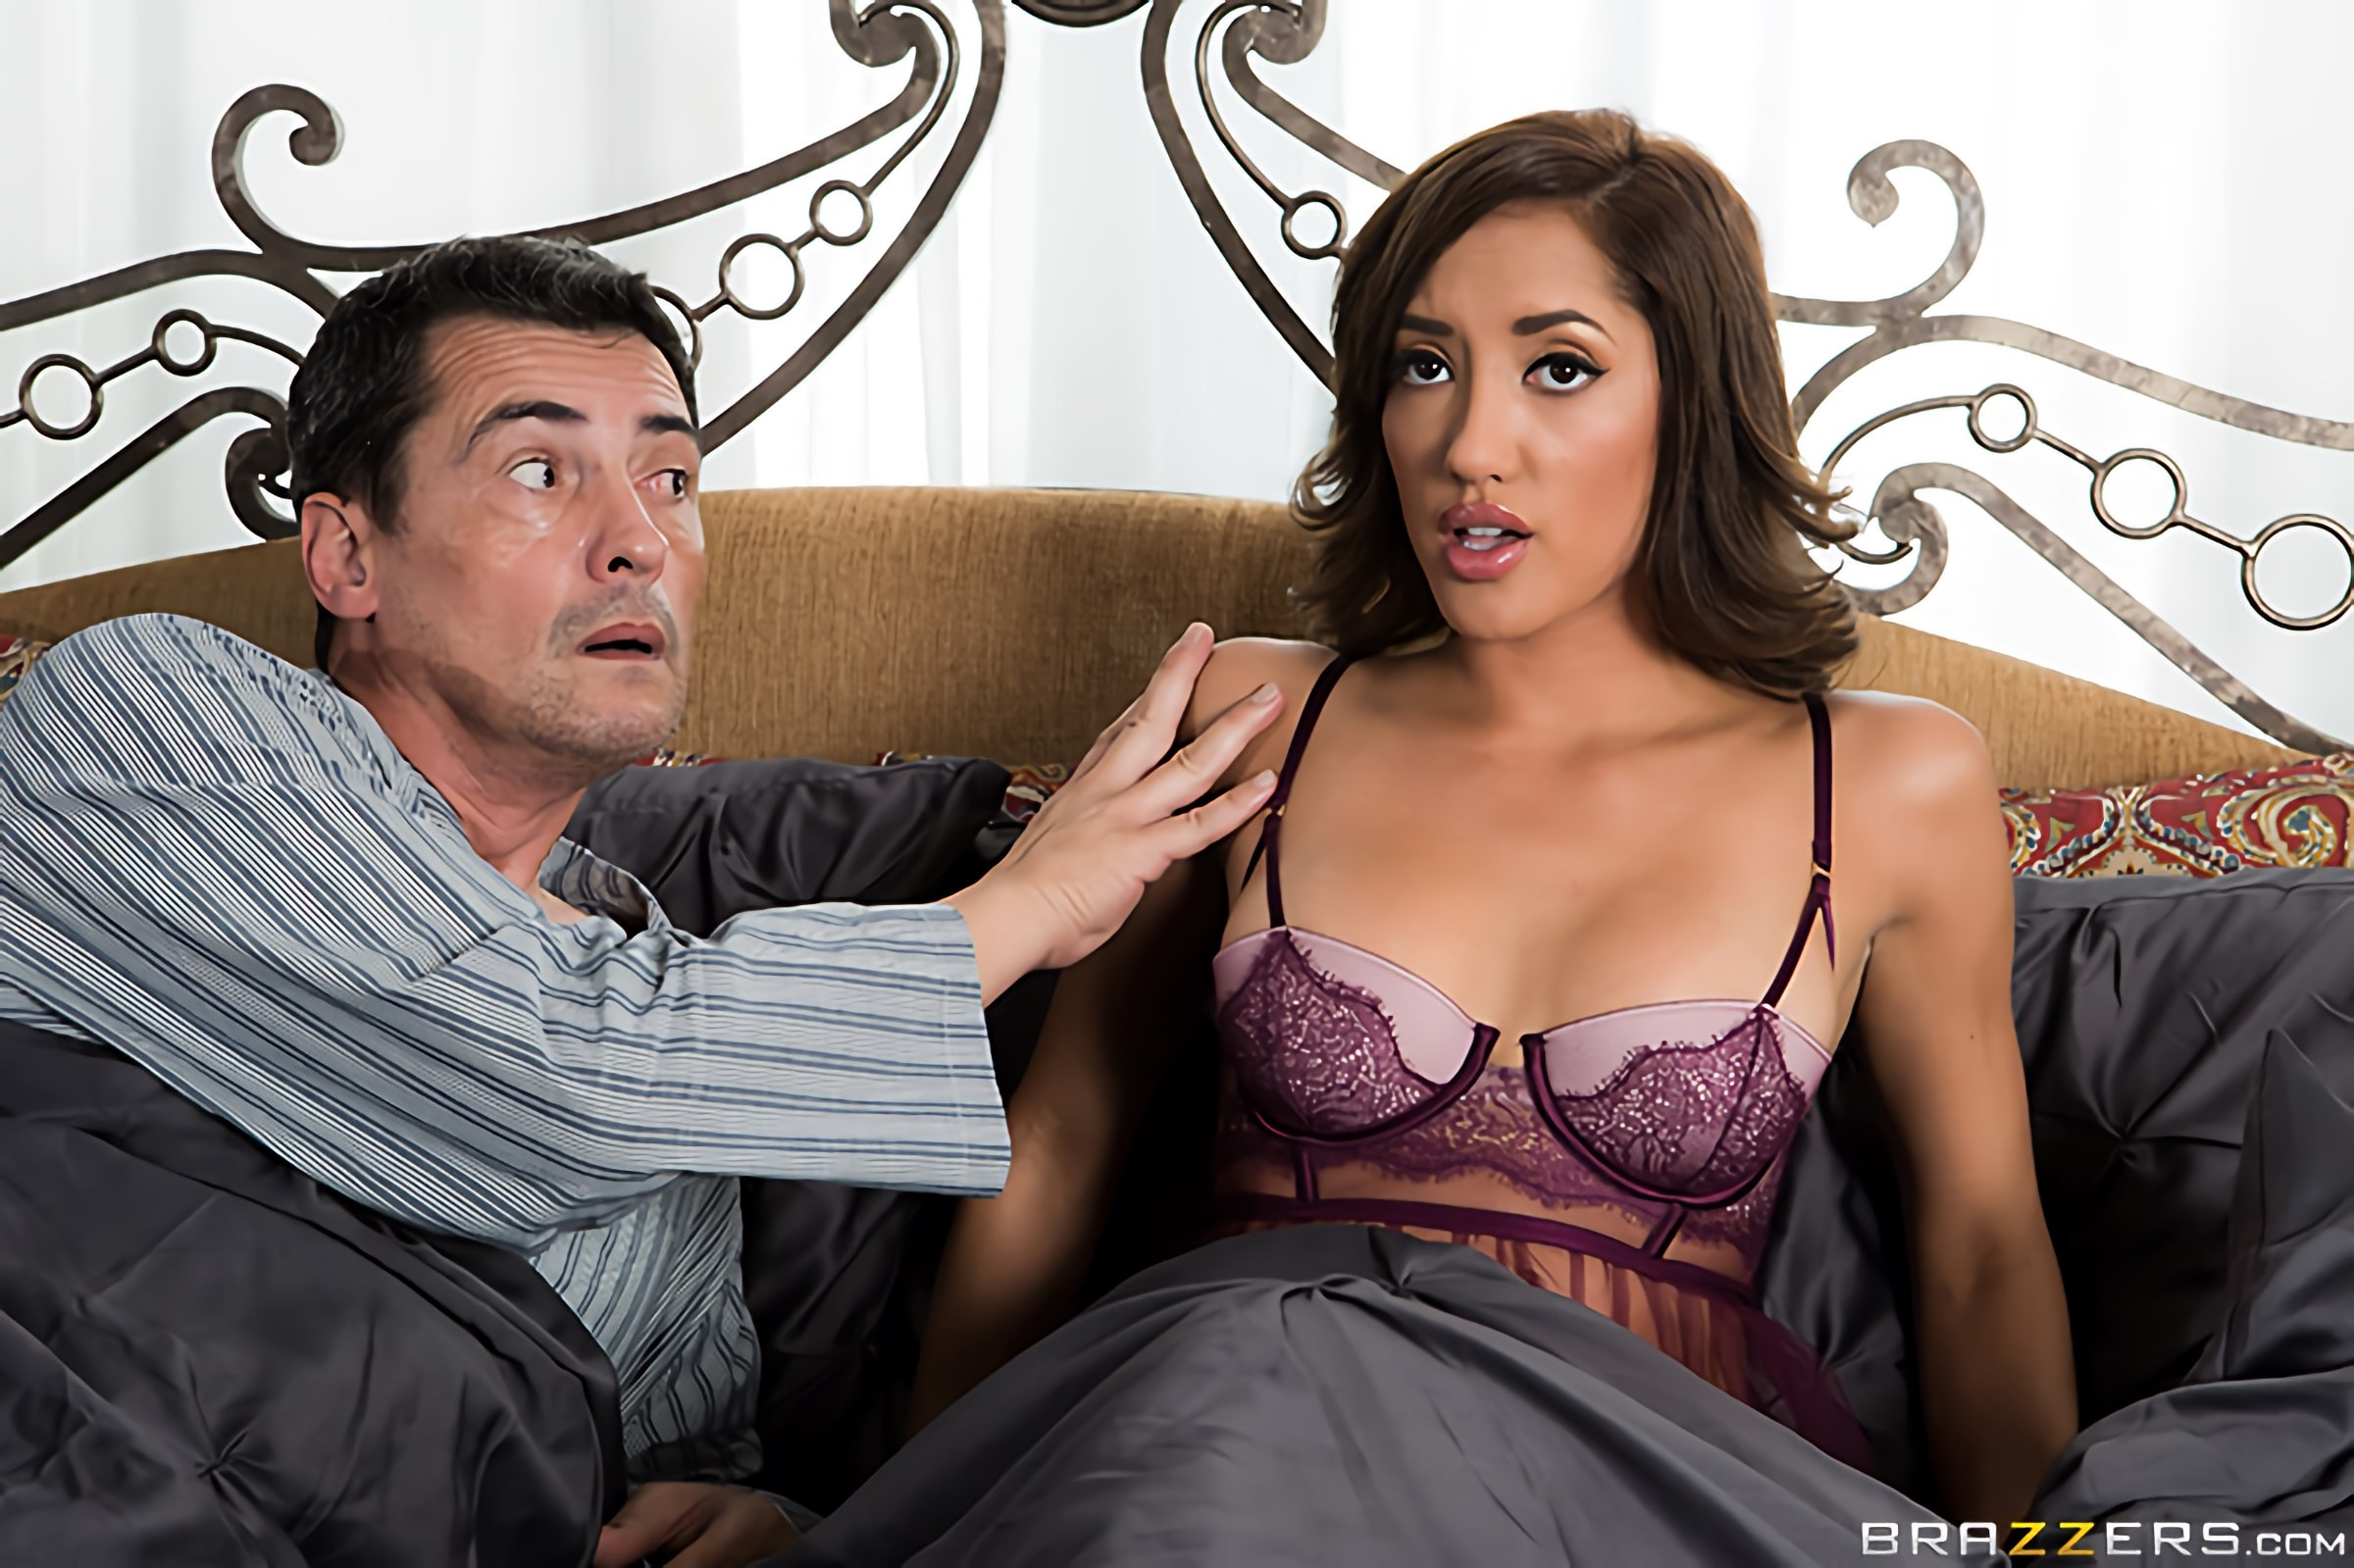 Brazzers 'Paid In Full' starring Chloe Amour (Photo 15)